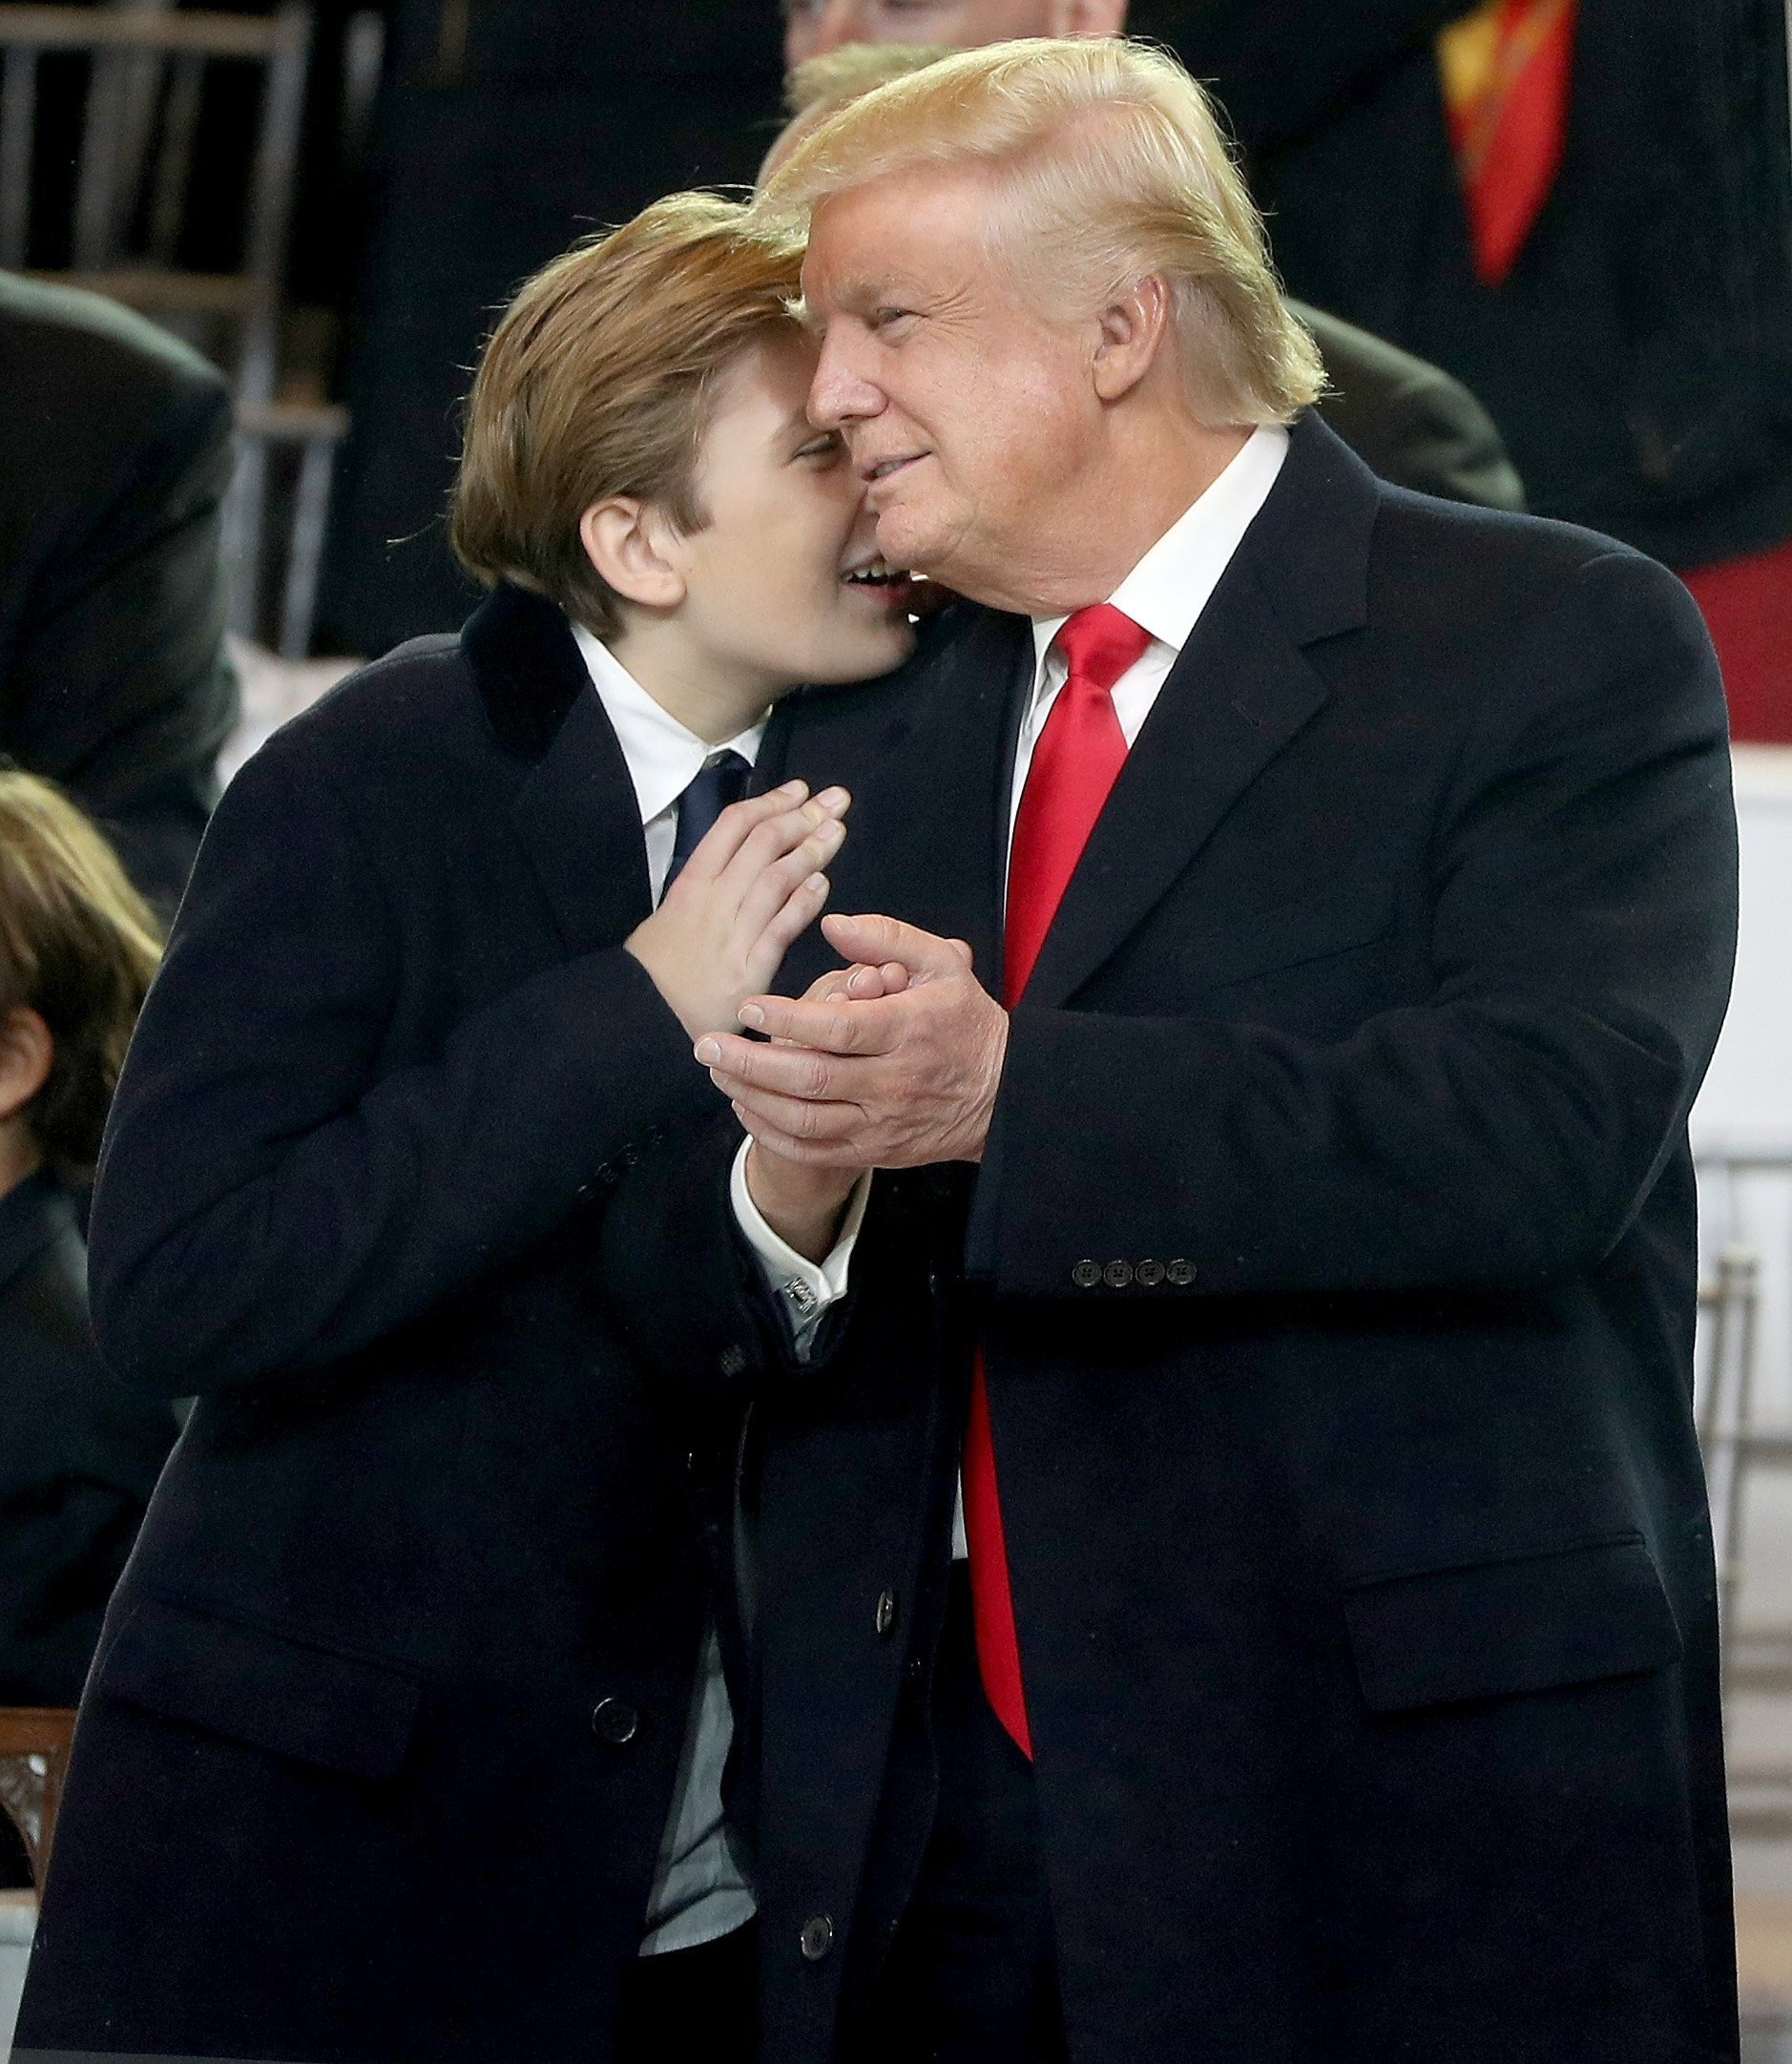 Barron Trump whispering to father President Donald Trump | Photo: Getty Images